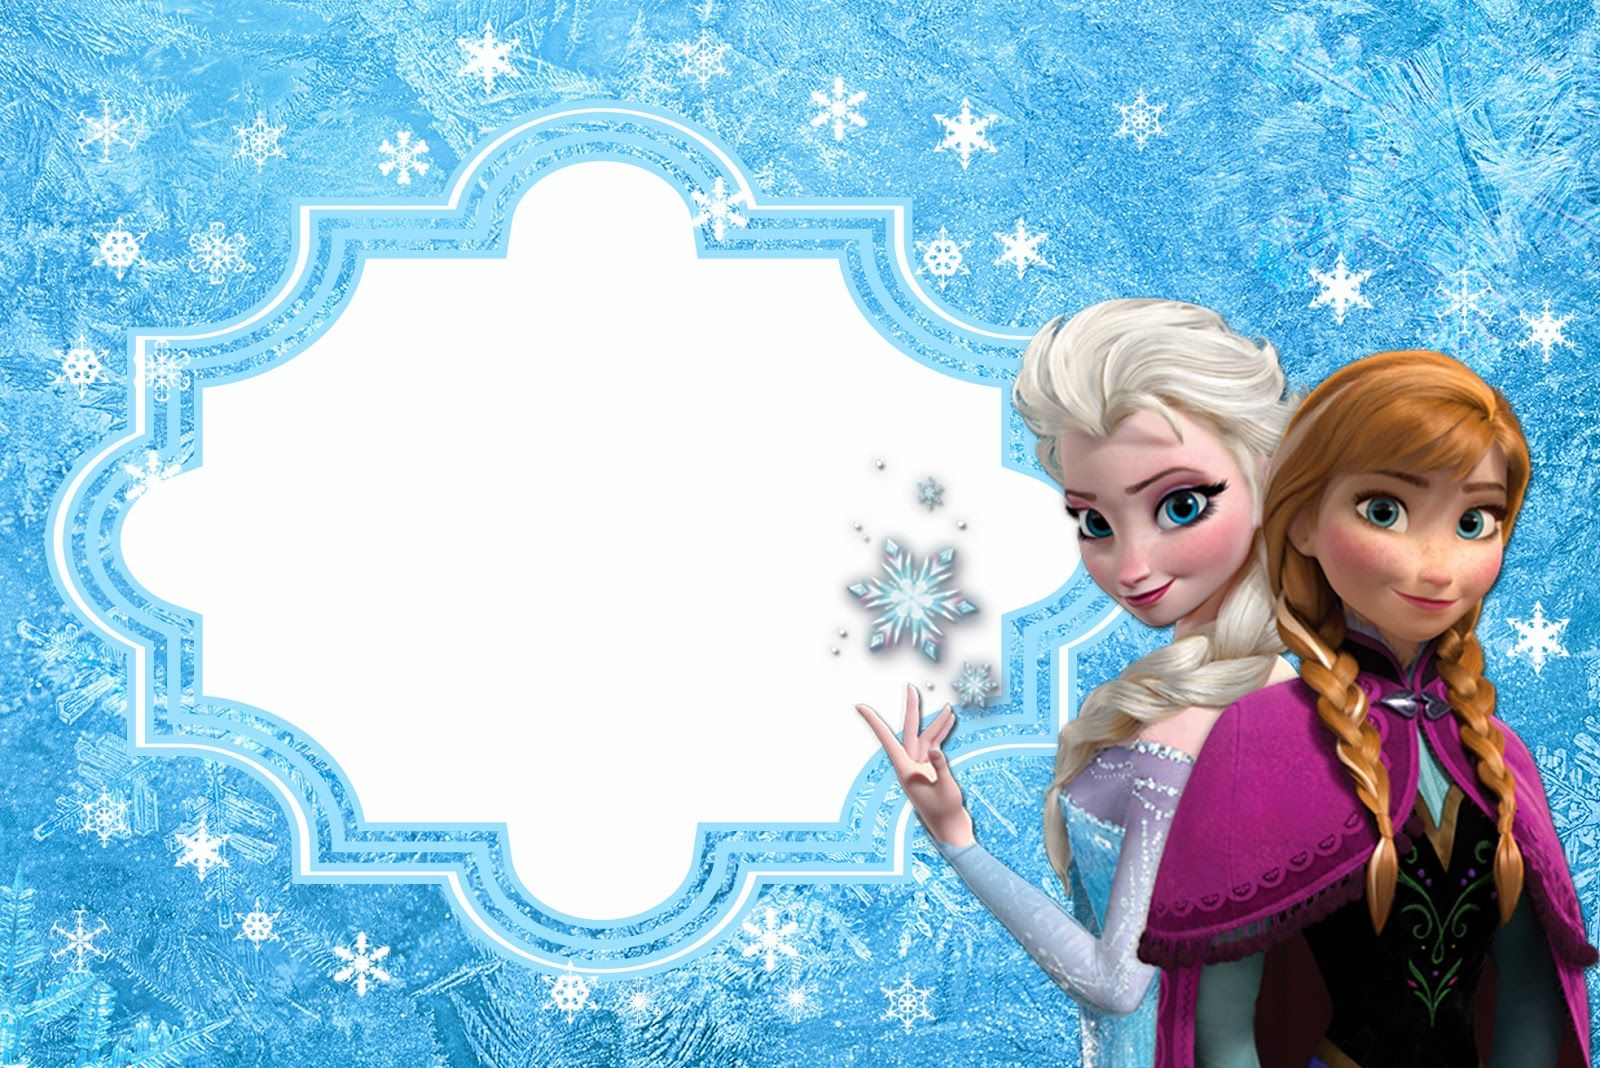 Canny image intended for frozen birthday card printable